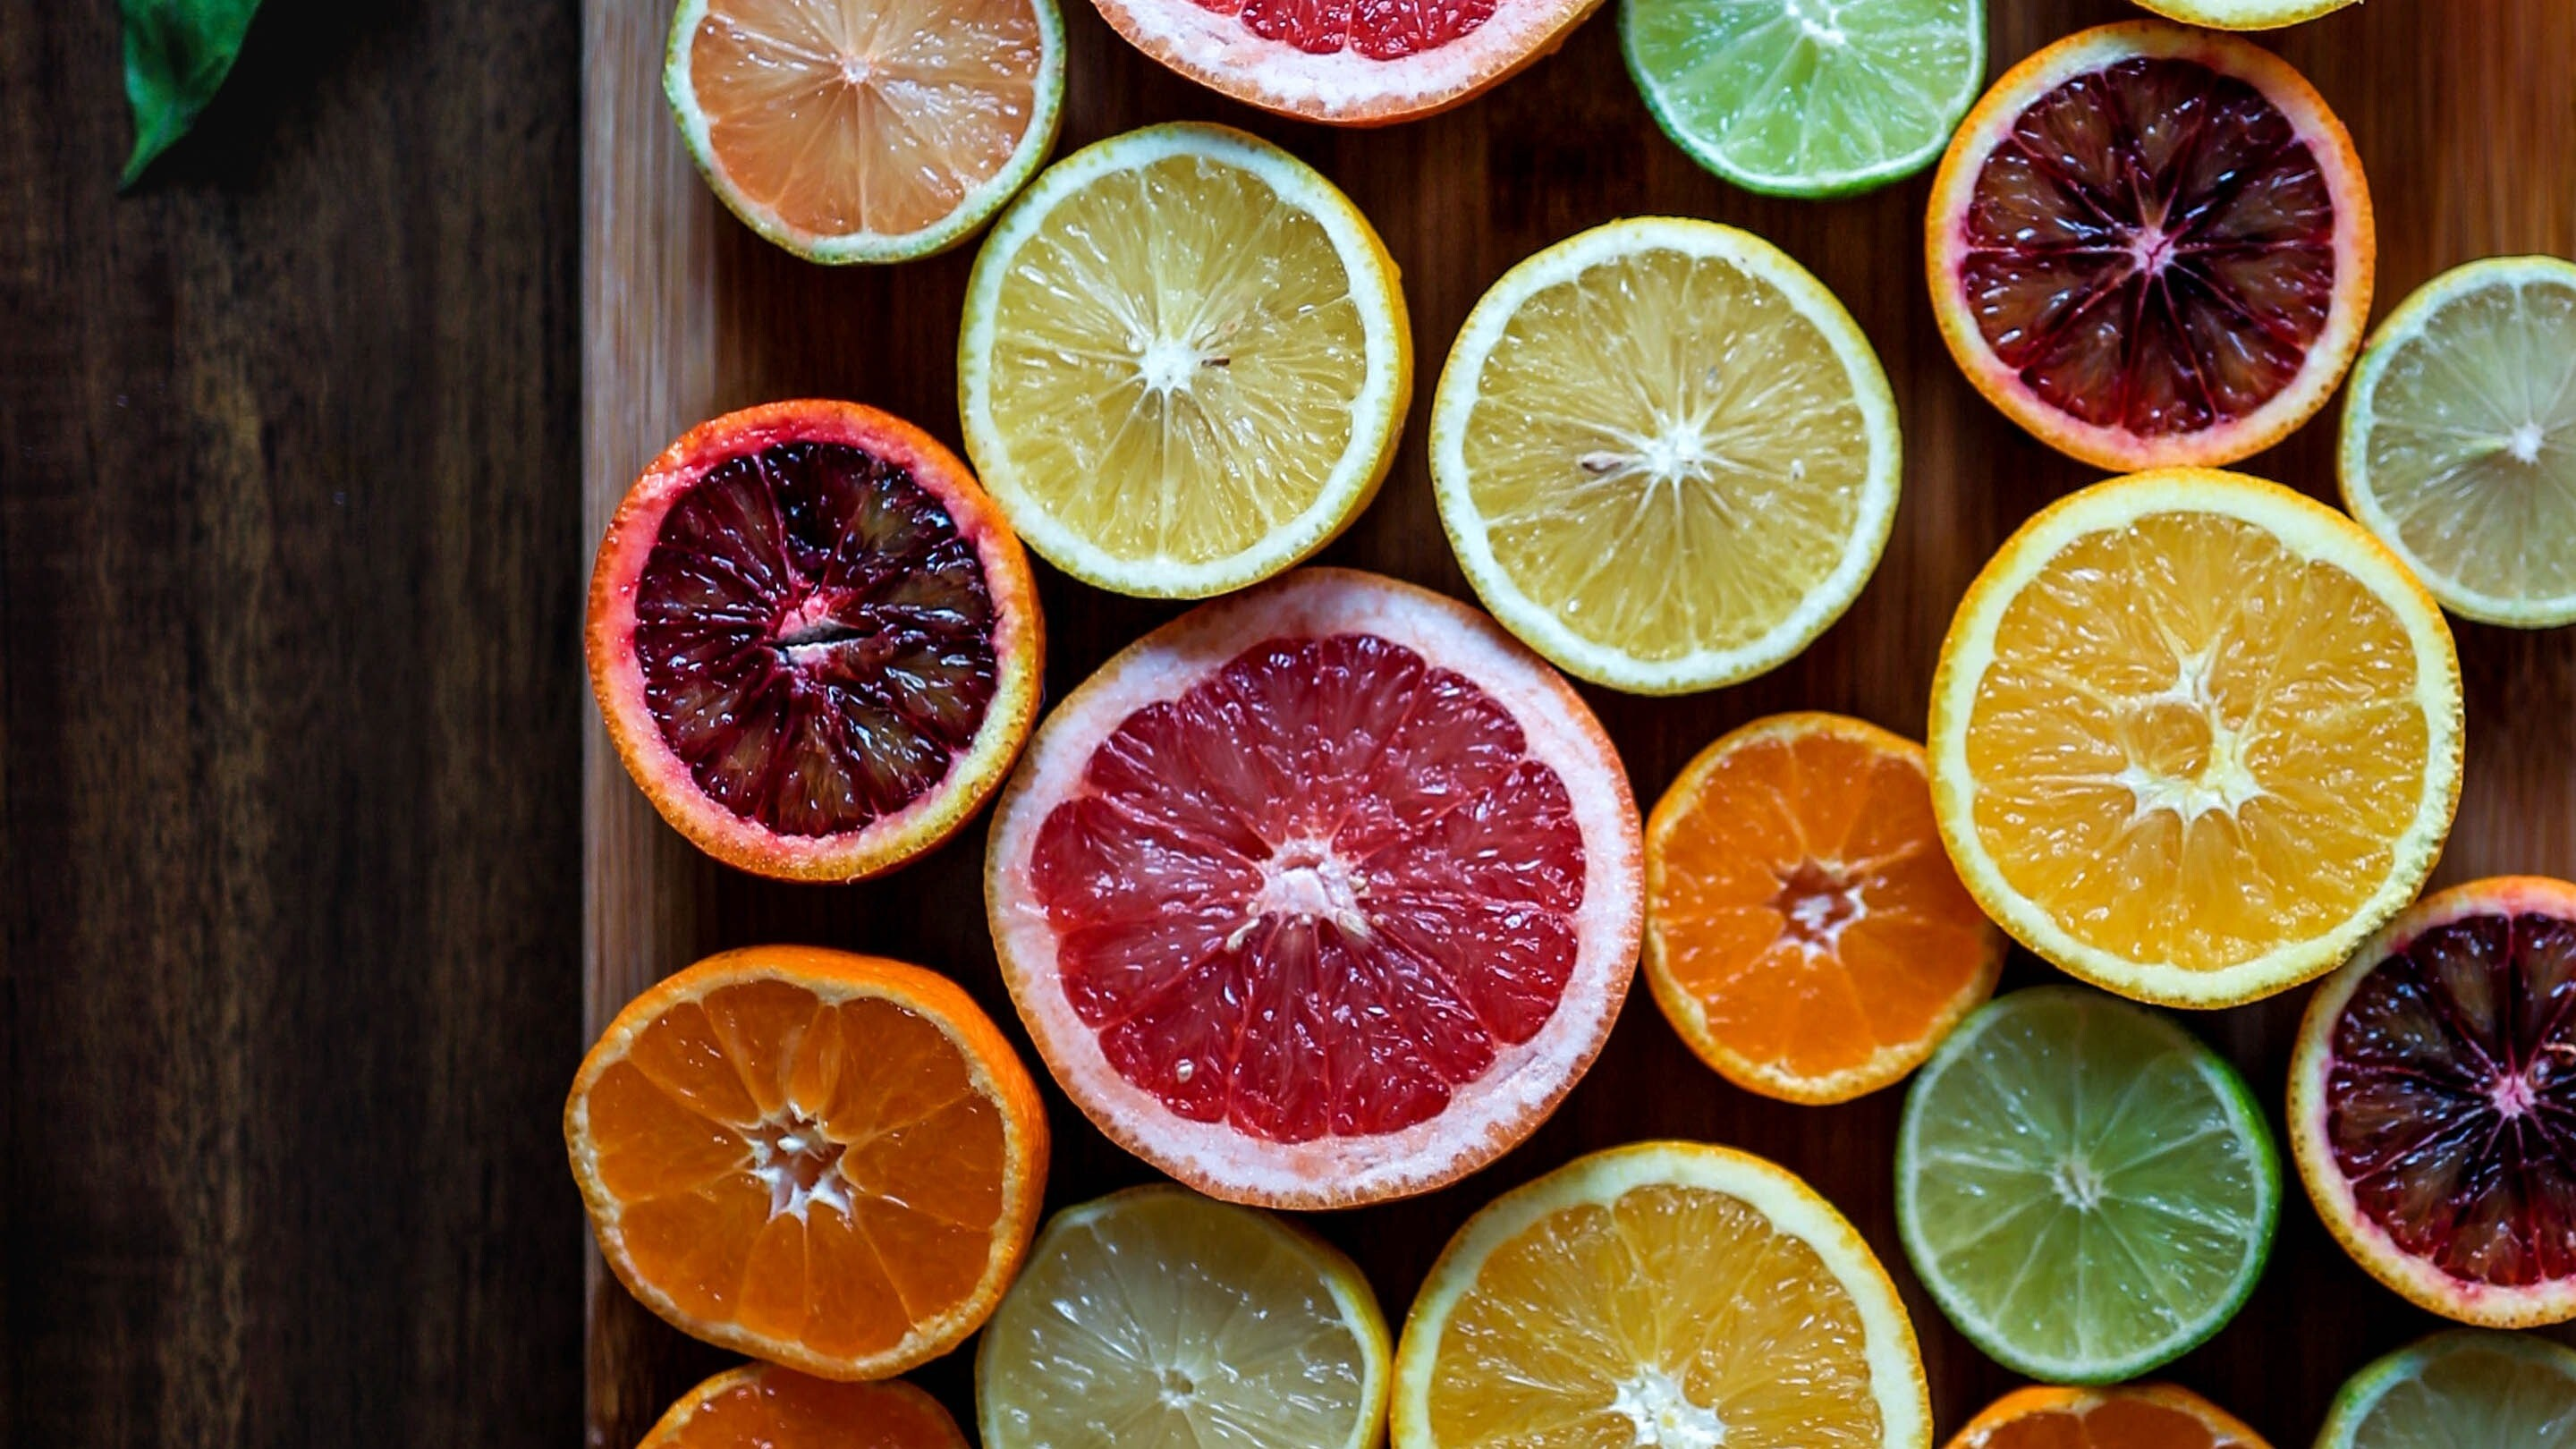 Colorful Food Wallpaper Free Download: Exotic Colorful Fruit On Table HD Photo